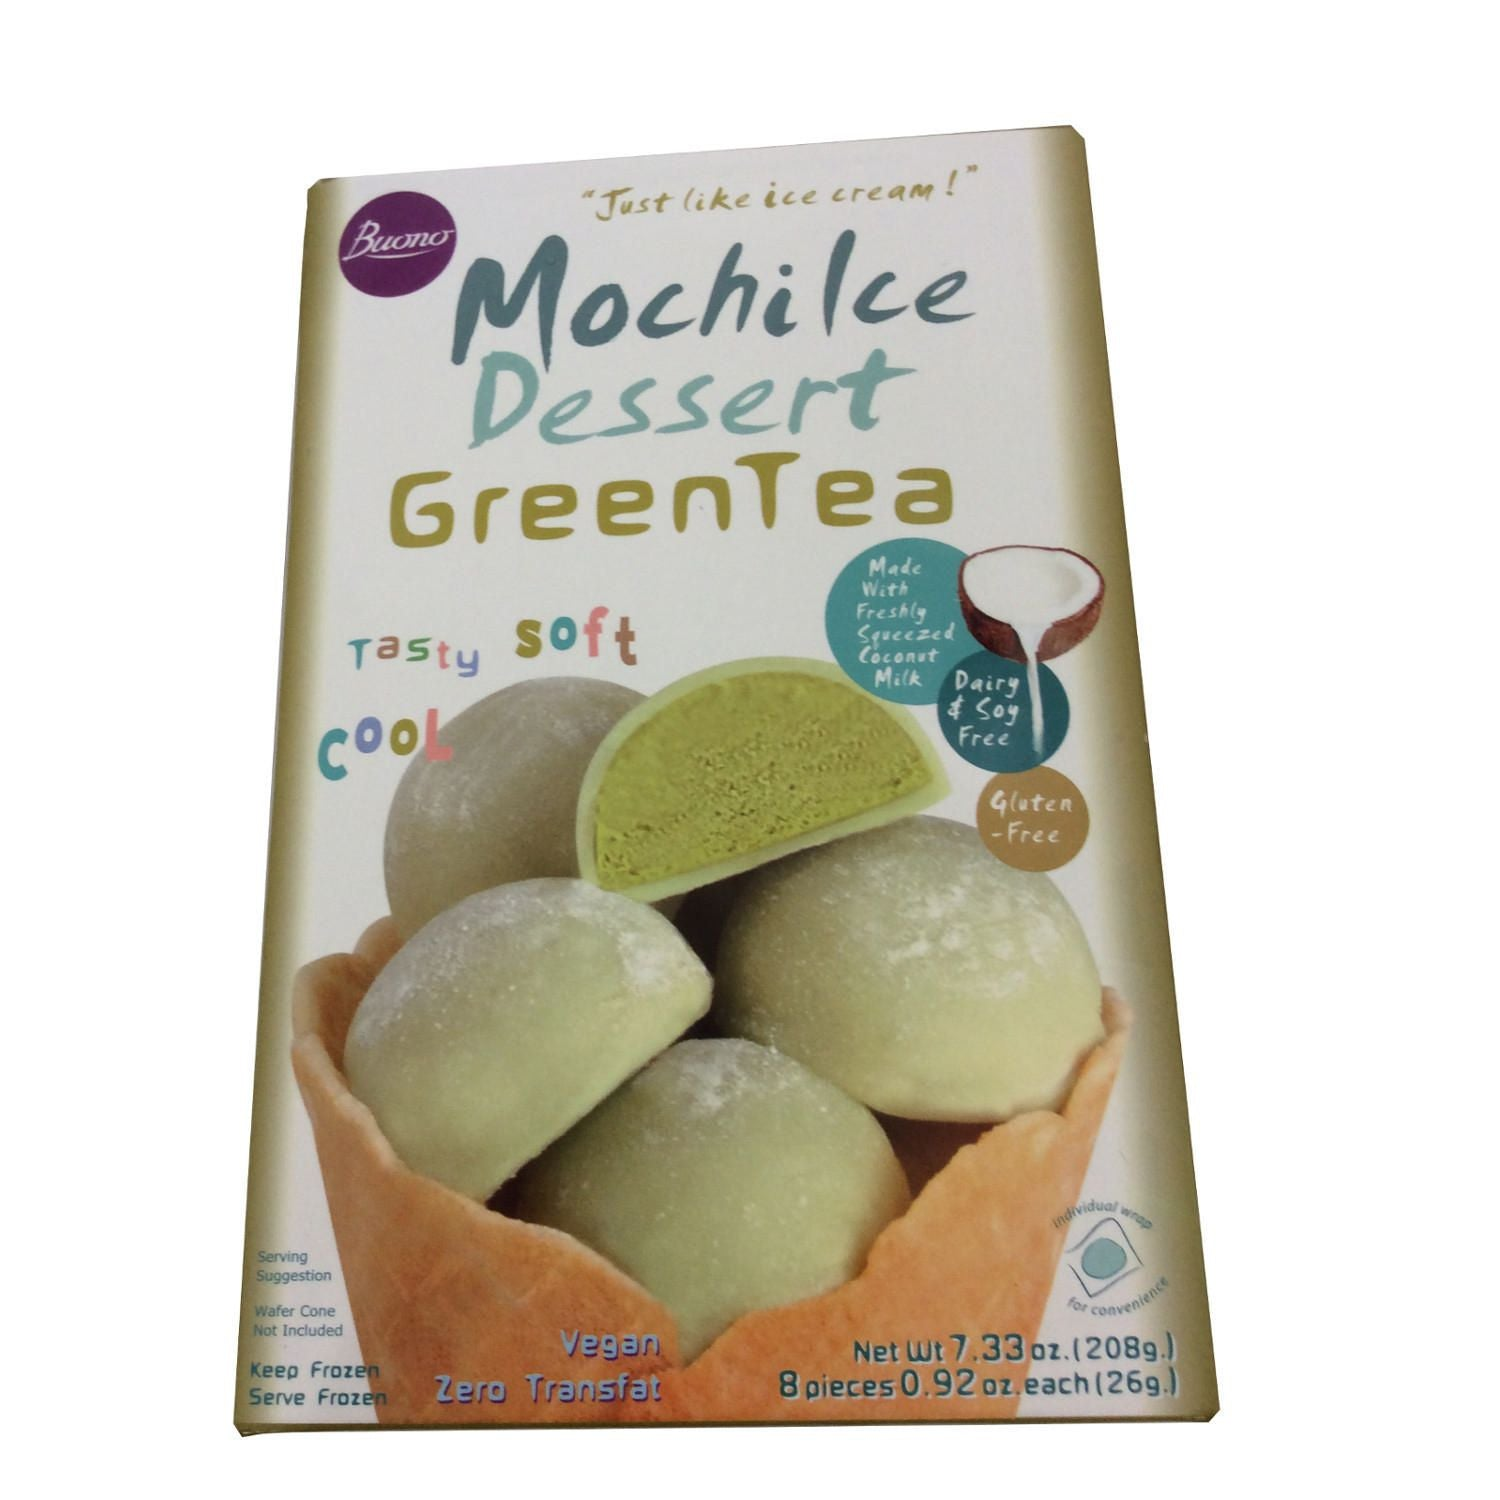 Frozen Mochi Ice Cream Dessert - Green Tea Flavour (Dairy Free) 6 x 26g by Buono